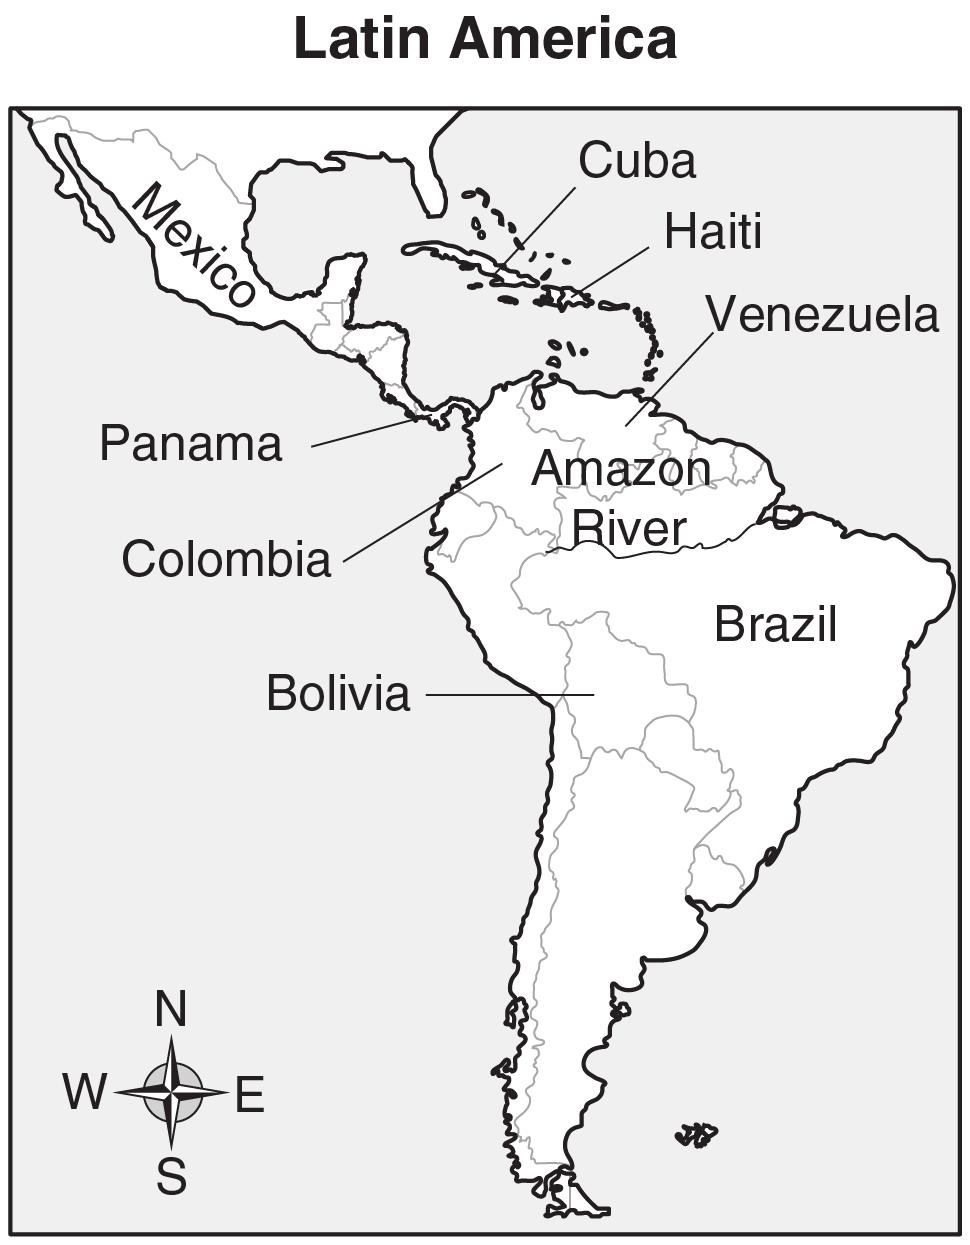 Unit 5: Latin America Today In this unit, you will turn your attention to Latin America. You will study the geography of some Latin American countries.